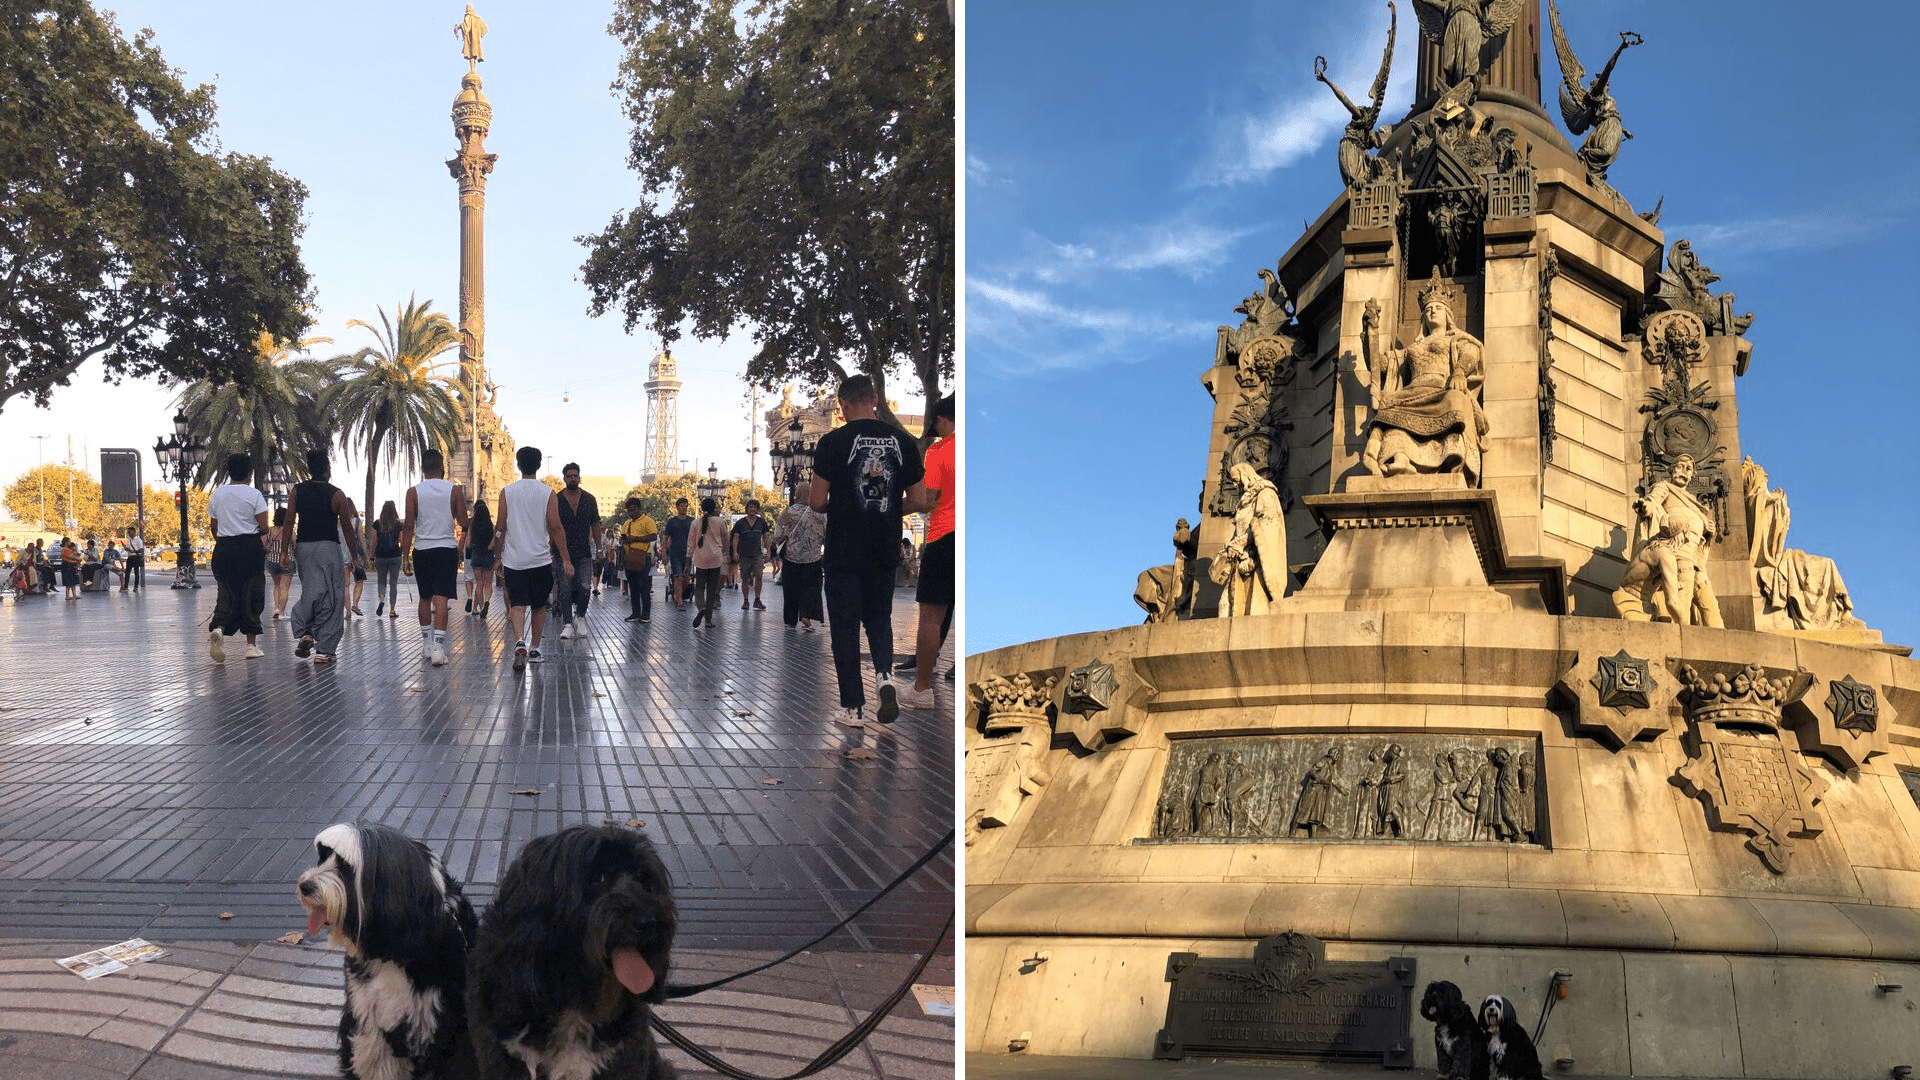 The dogs in Barcelona